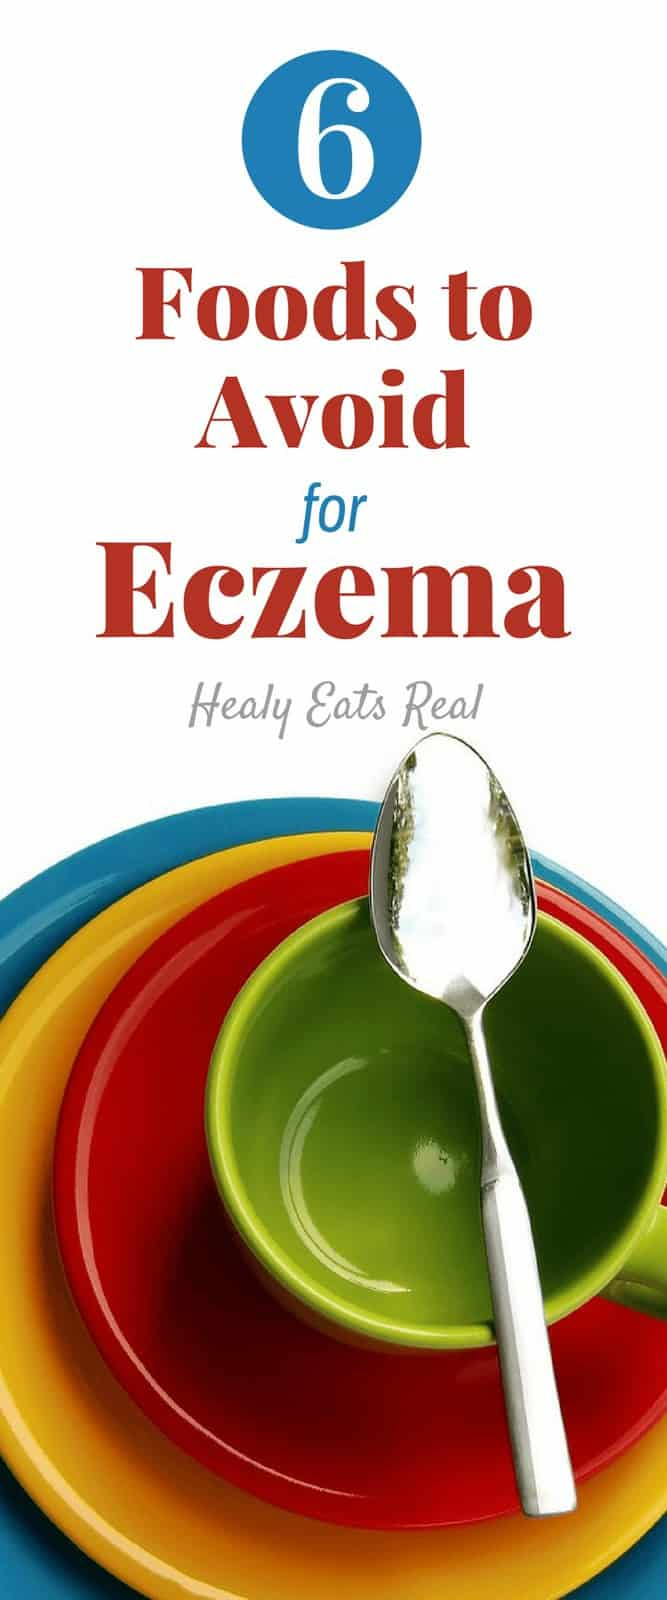 6 Foods to Avoid On An Eczema Diet - When adopting the right eczema diet it's important to consider how certain foods affect you. These six foods most commonly exacerbate eczema symptoms. #eczema #diet #healthylifestyle #dryskin